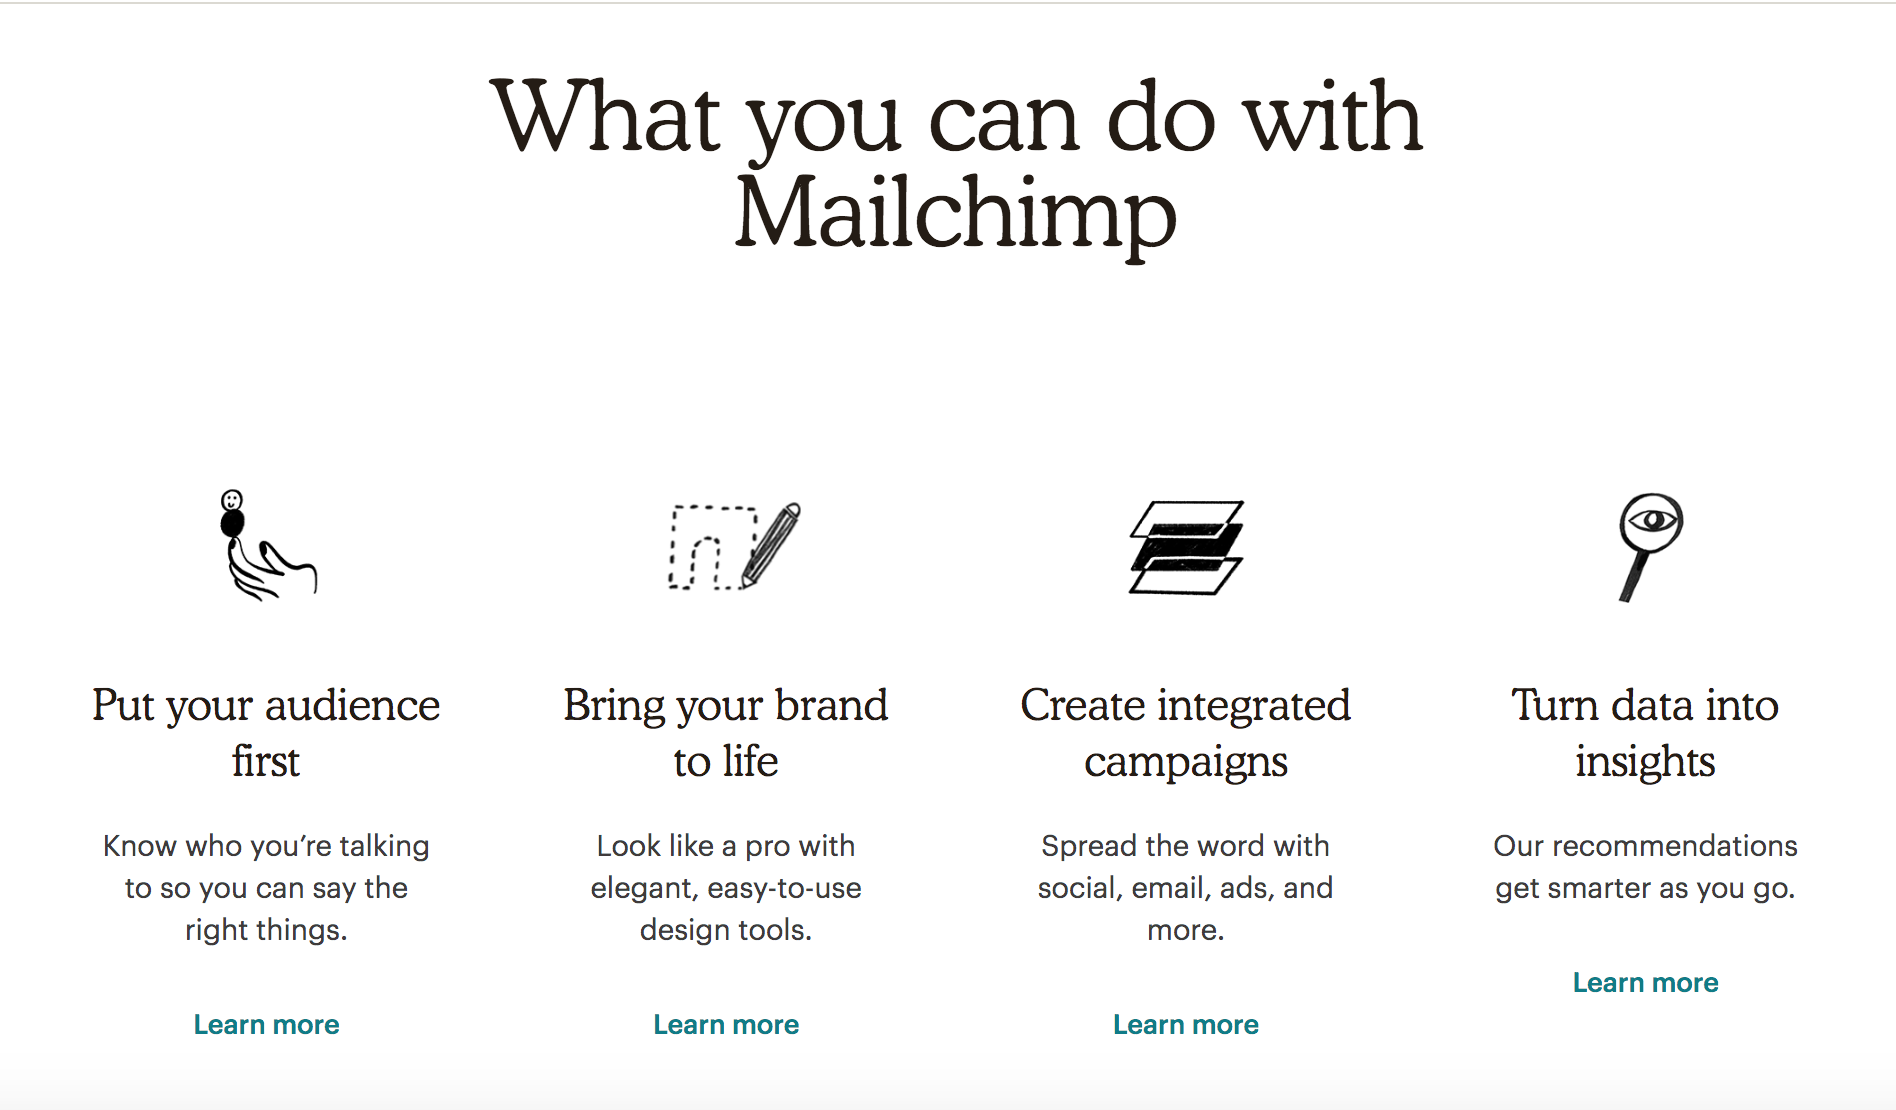 Mailchimp's functionality - email marketing software